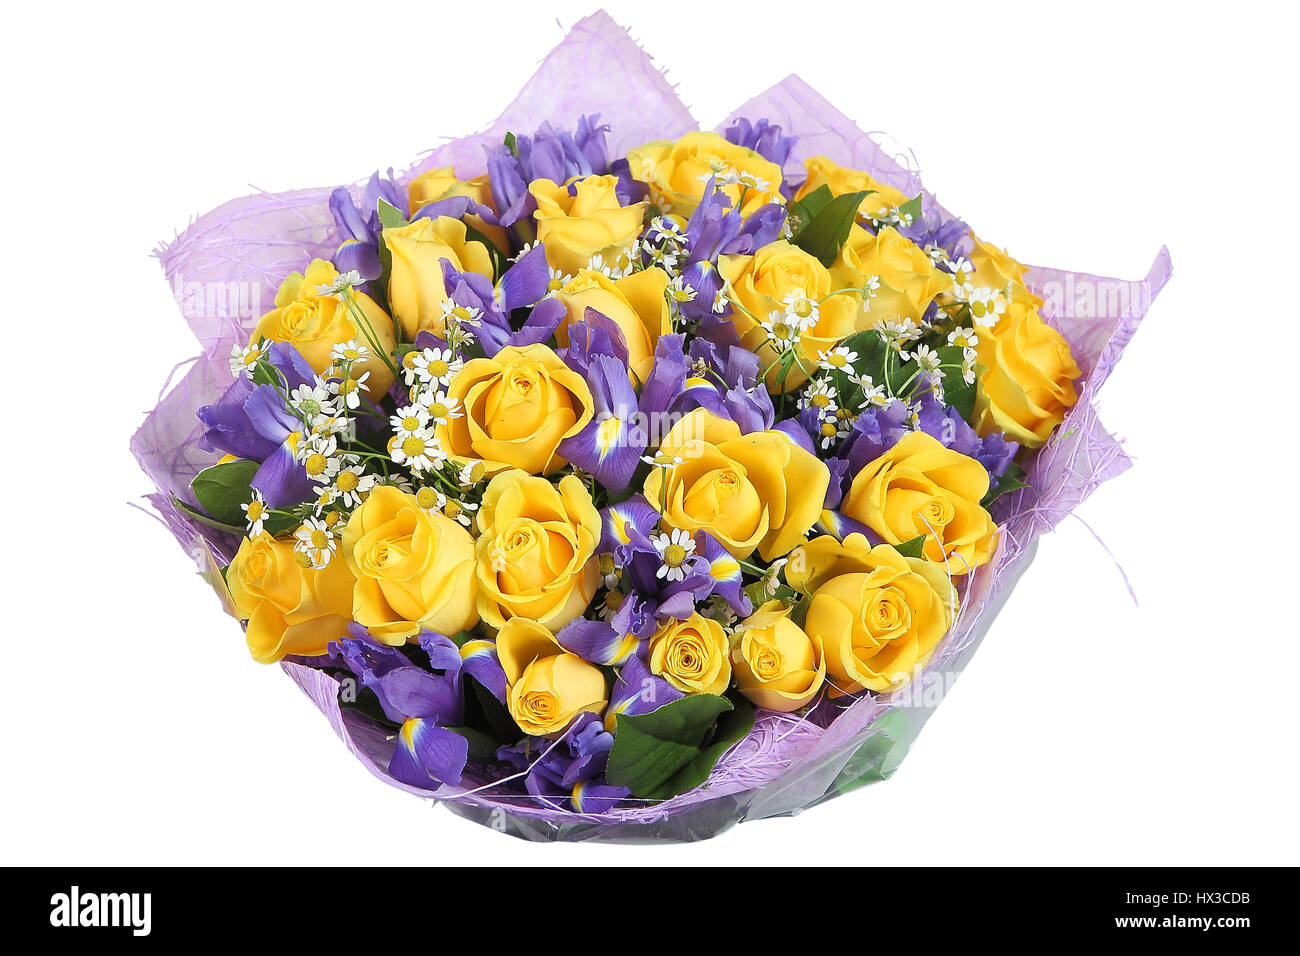 Bunch Of Violet Roses Stock Photos Bunch Of Violet Roses Stock